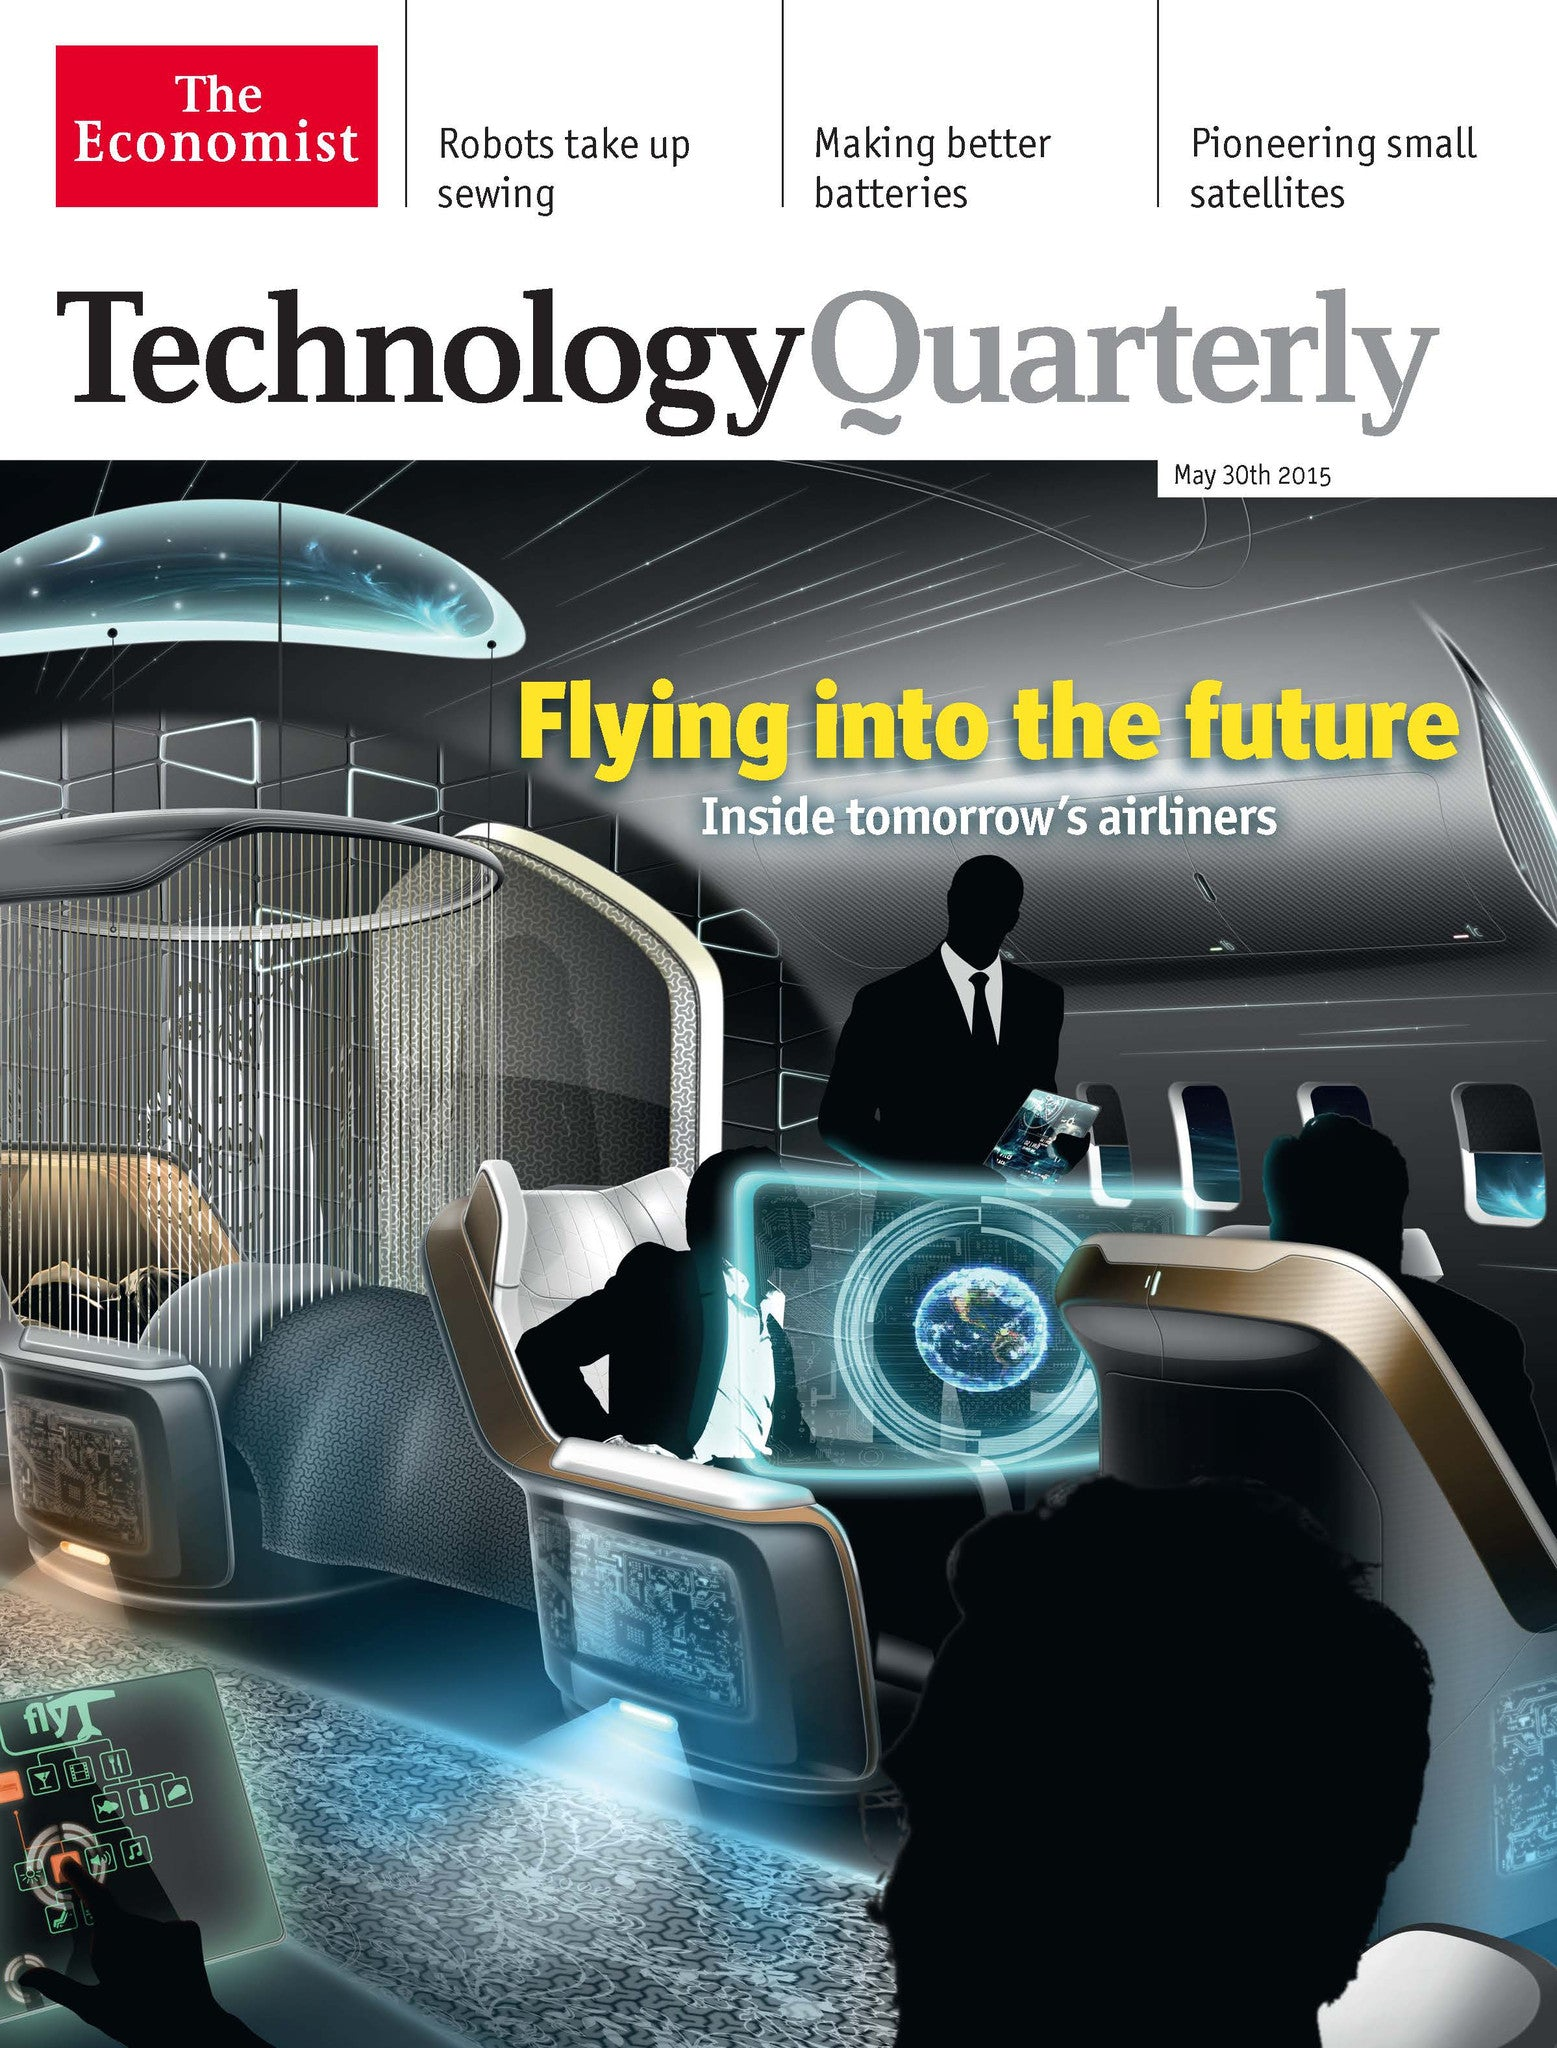 Technology Quarterly in Audio: Flying into the future